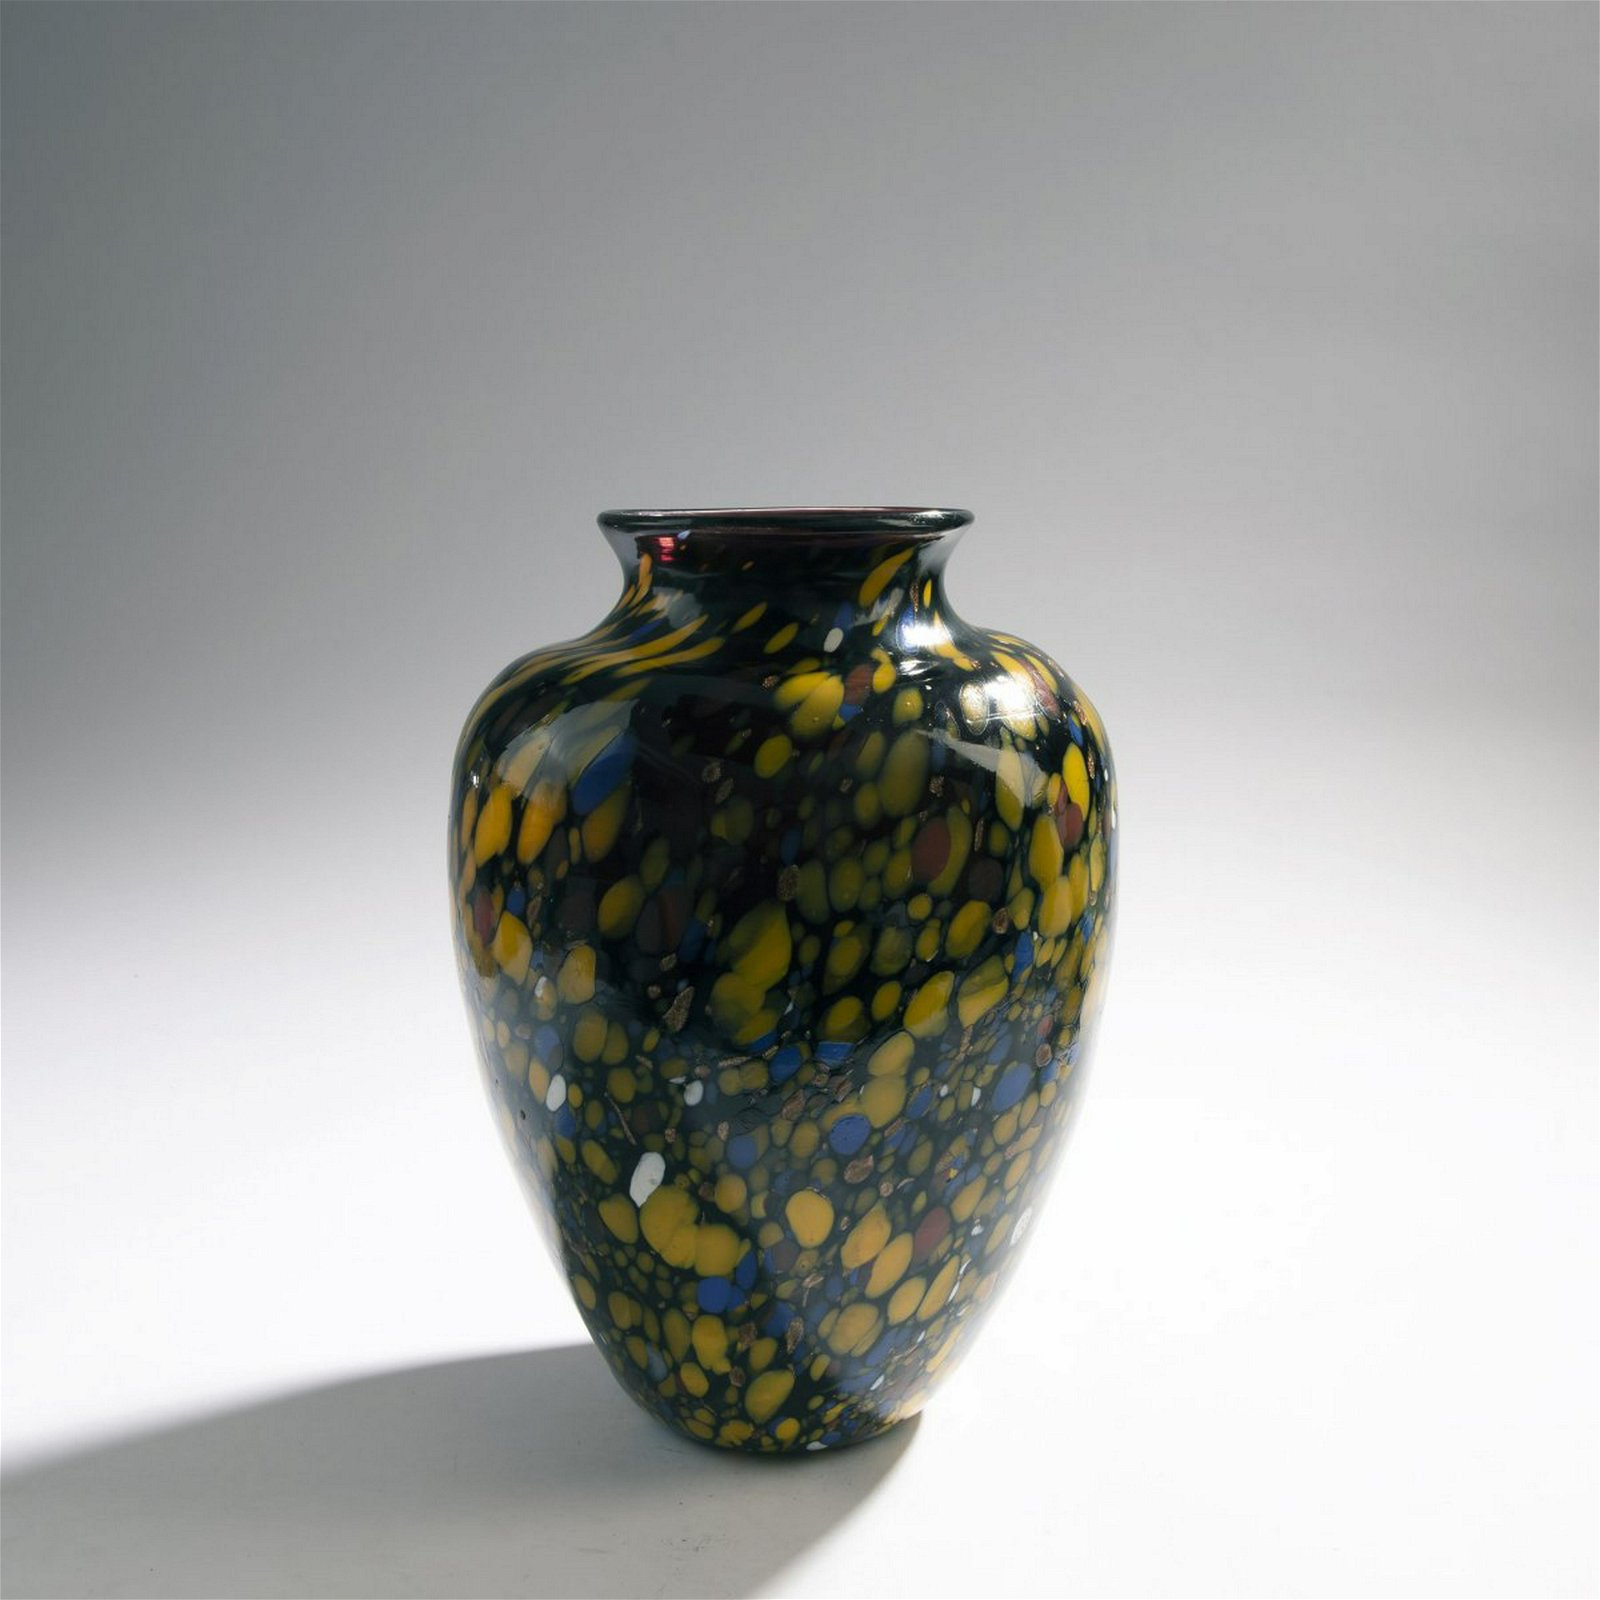 Fratelli Toso (attr.), Vase 'A macchie', 1930s